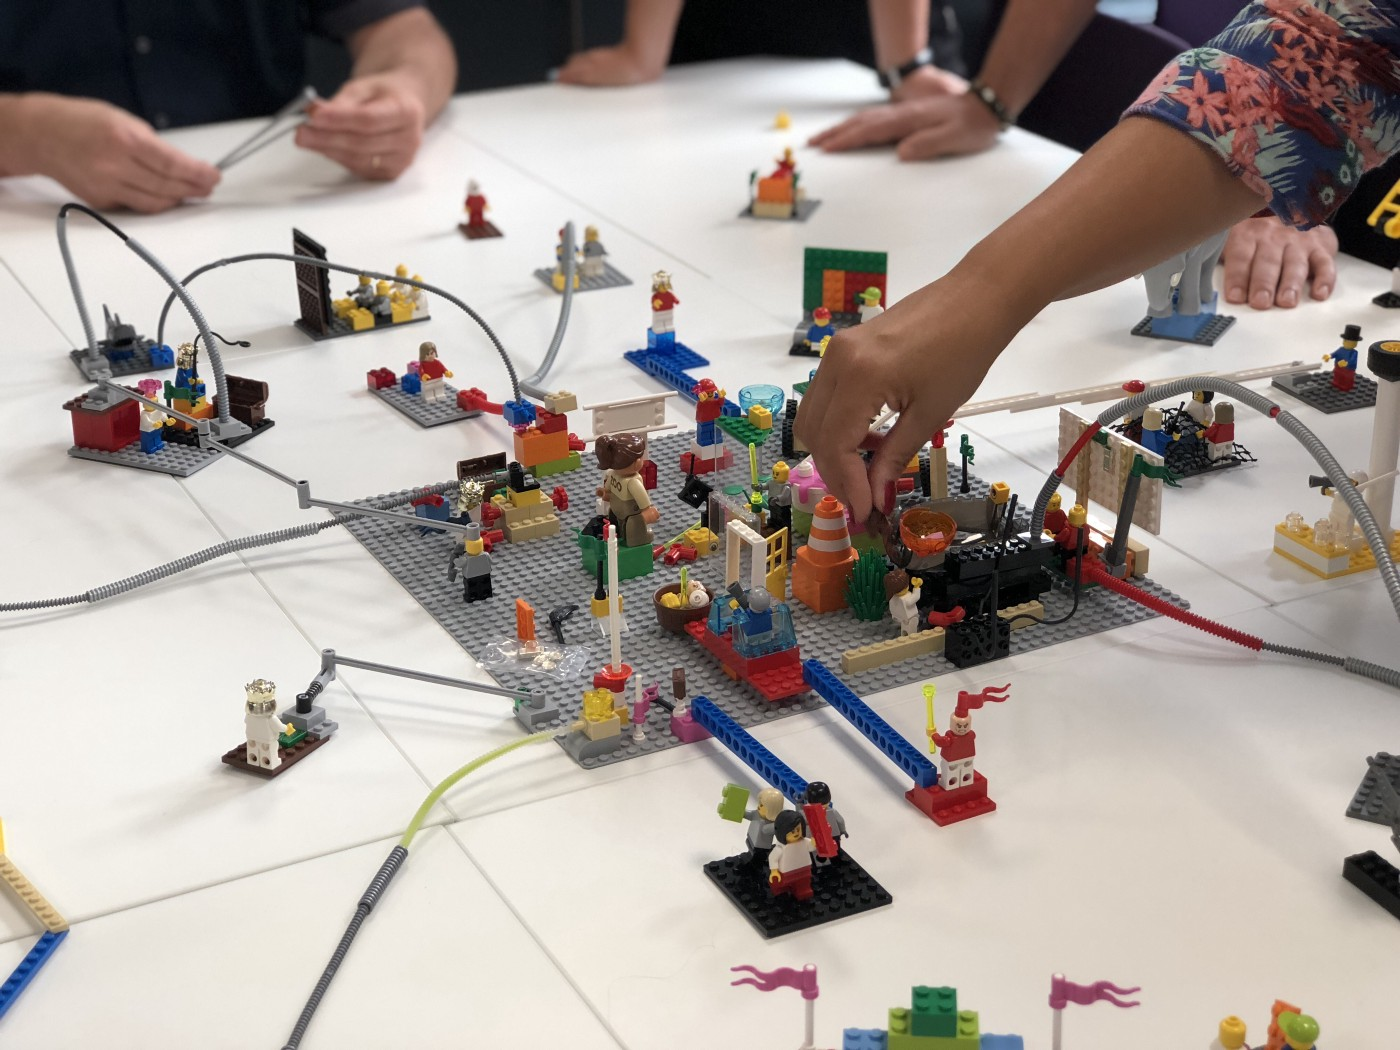 Multiple people with multiple Lego sets in various stages of build